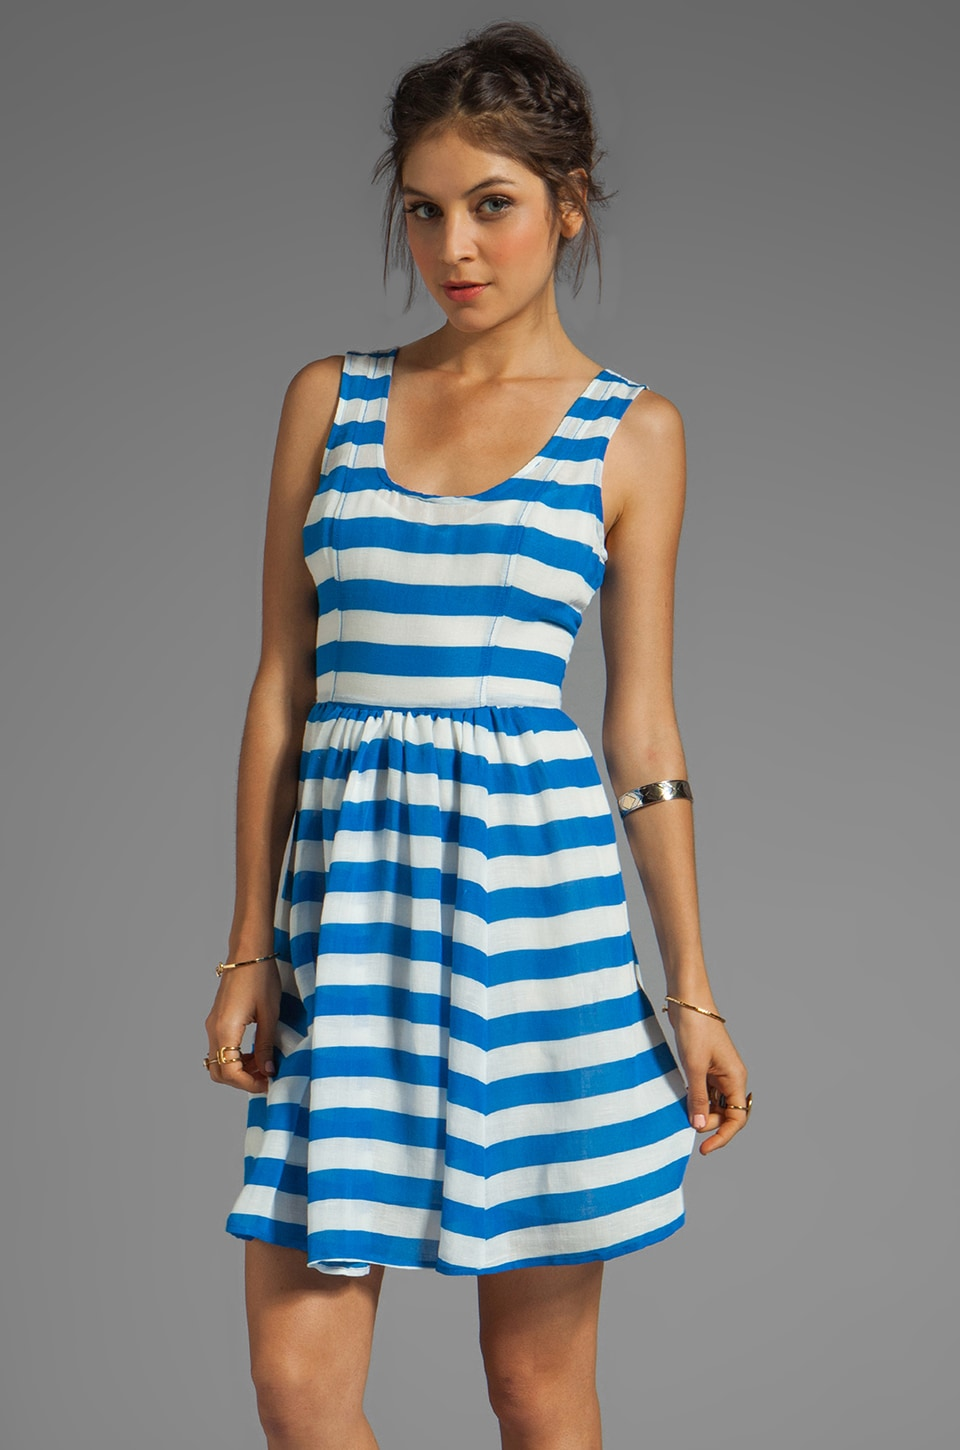 Plenty by Tracy Reese Sheer Bold Stripes Frock Dress in Skydiver Blue/White